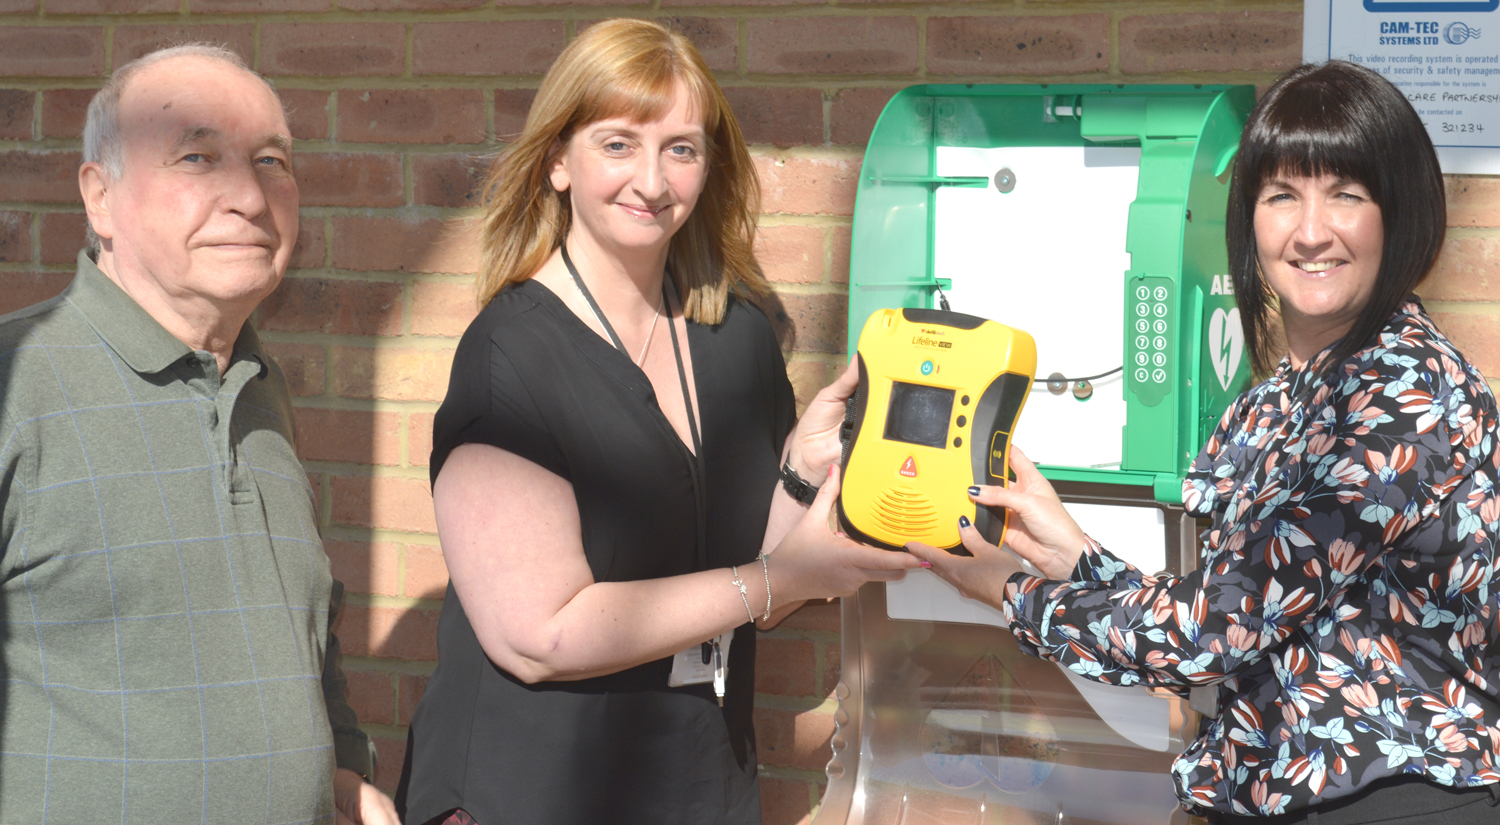 Town's Defibrillator Project is a Proven Life-Saver